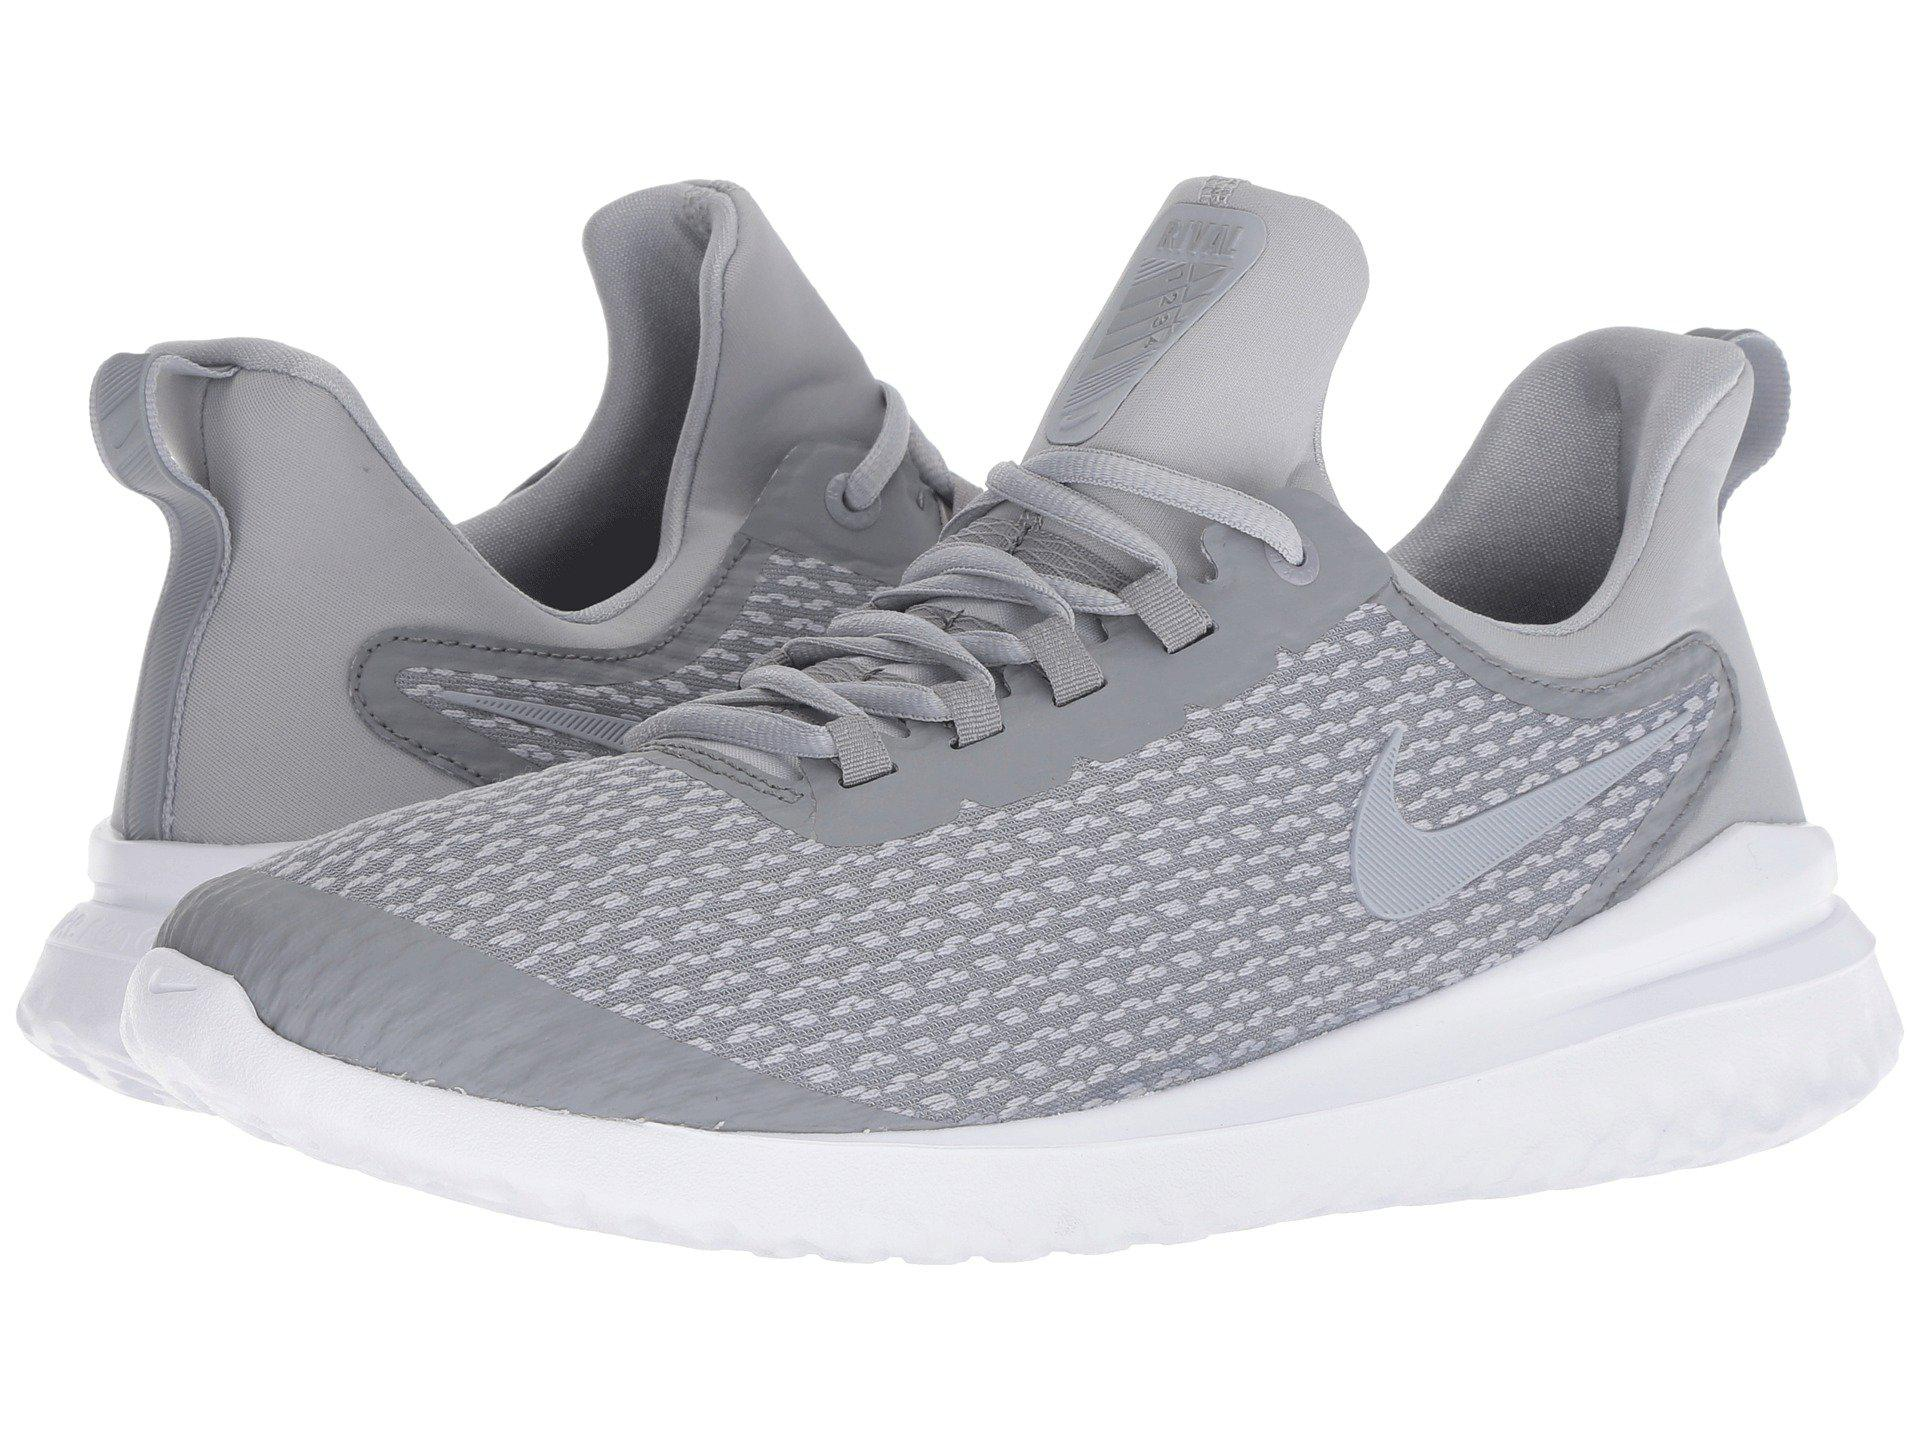 7b88aff70c4 Lyst - Nike Renew Rival in Gray for Men - Save 18%